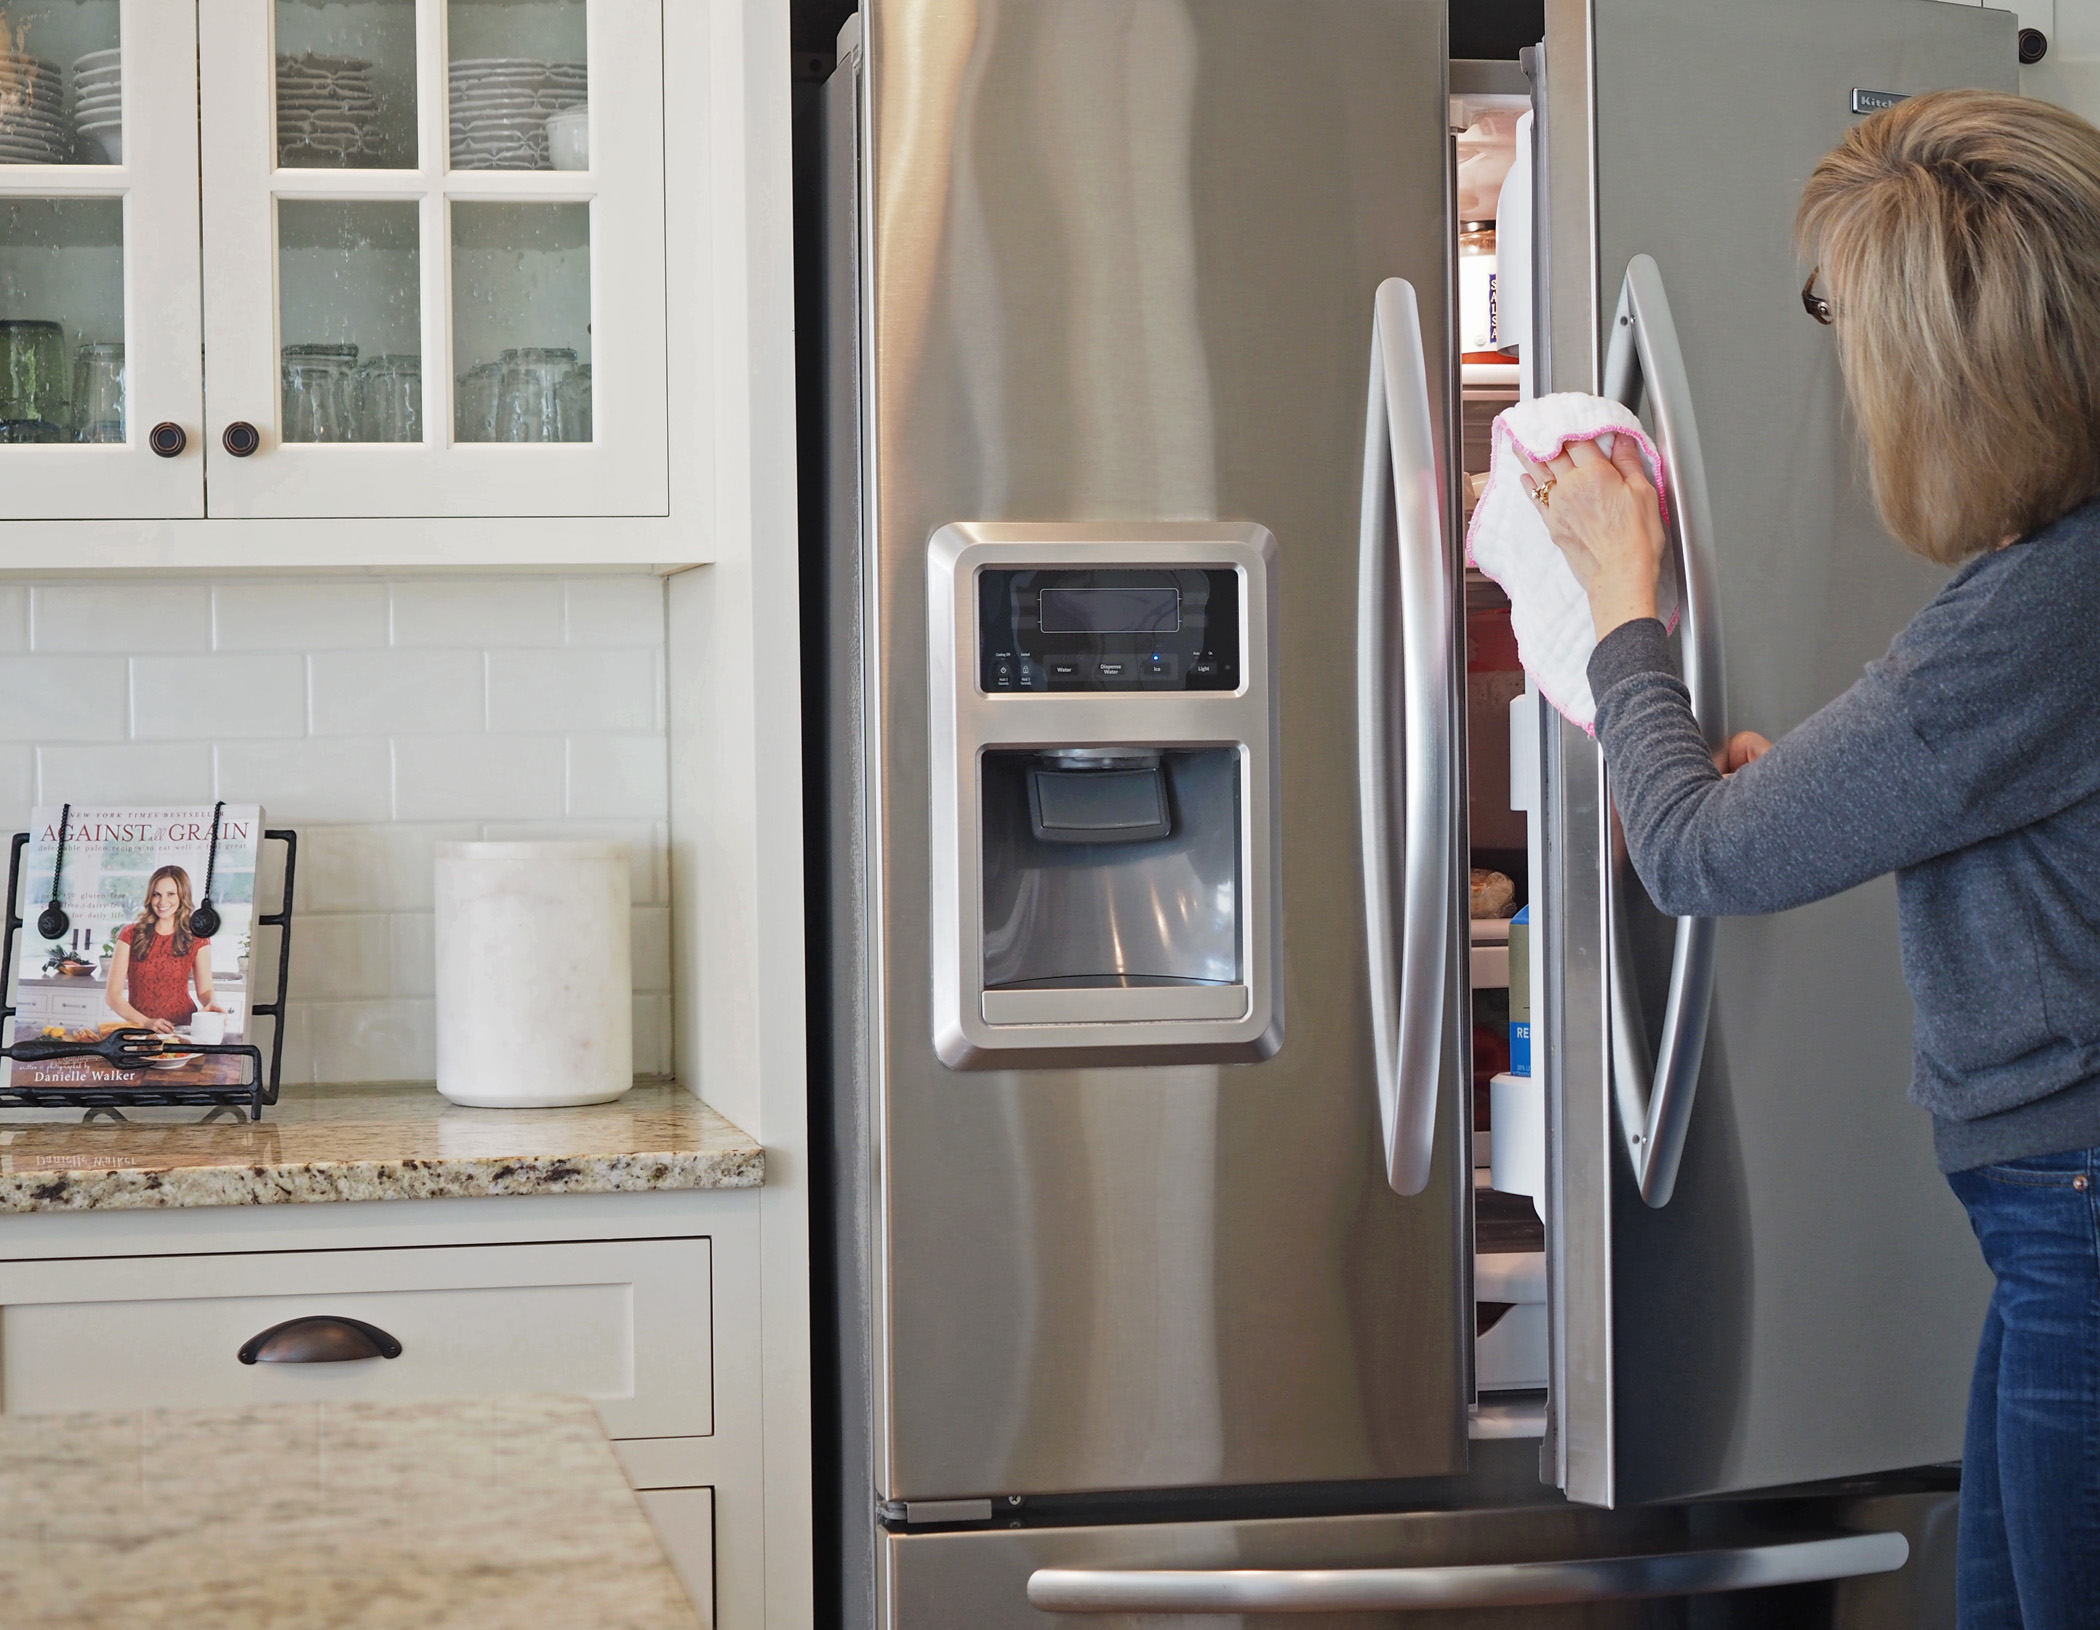 Don't forget to open the doors and freezer drawer too! There are so many fingerprints inside the door. Also, if you have any food or liquid dried up on your appliances, use a wet washcloth to clean that type of dirt off first. I think this product is best for water spots and for bringing back the shine.